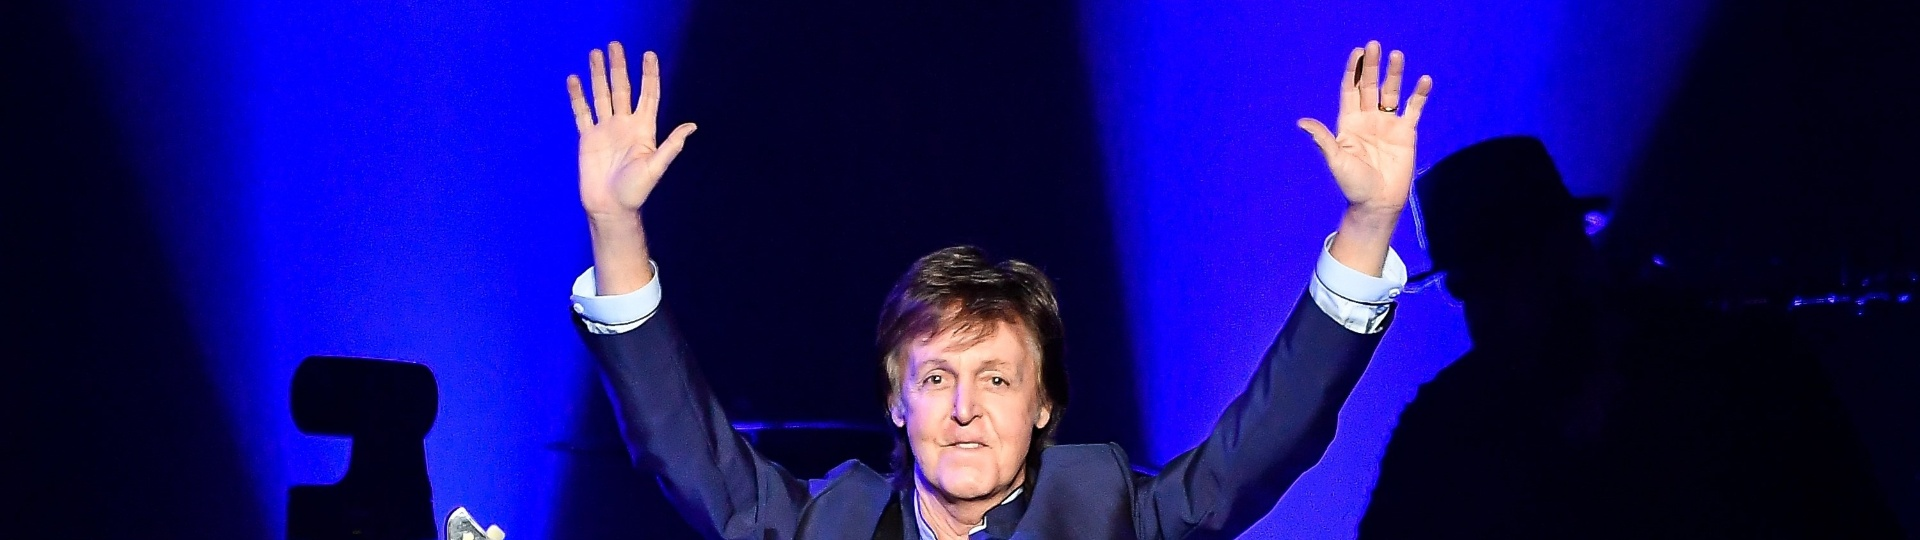 13.abr.2016 - Paul McCartney abre sua turnê